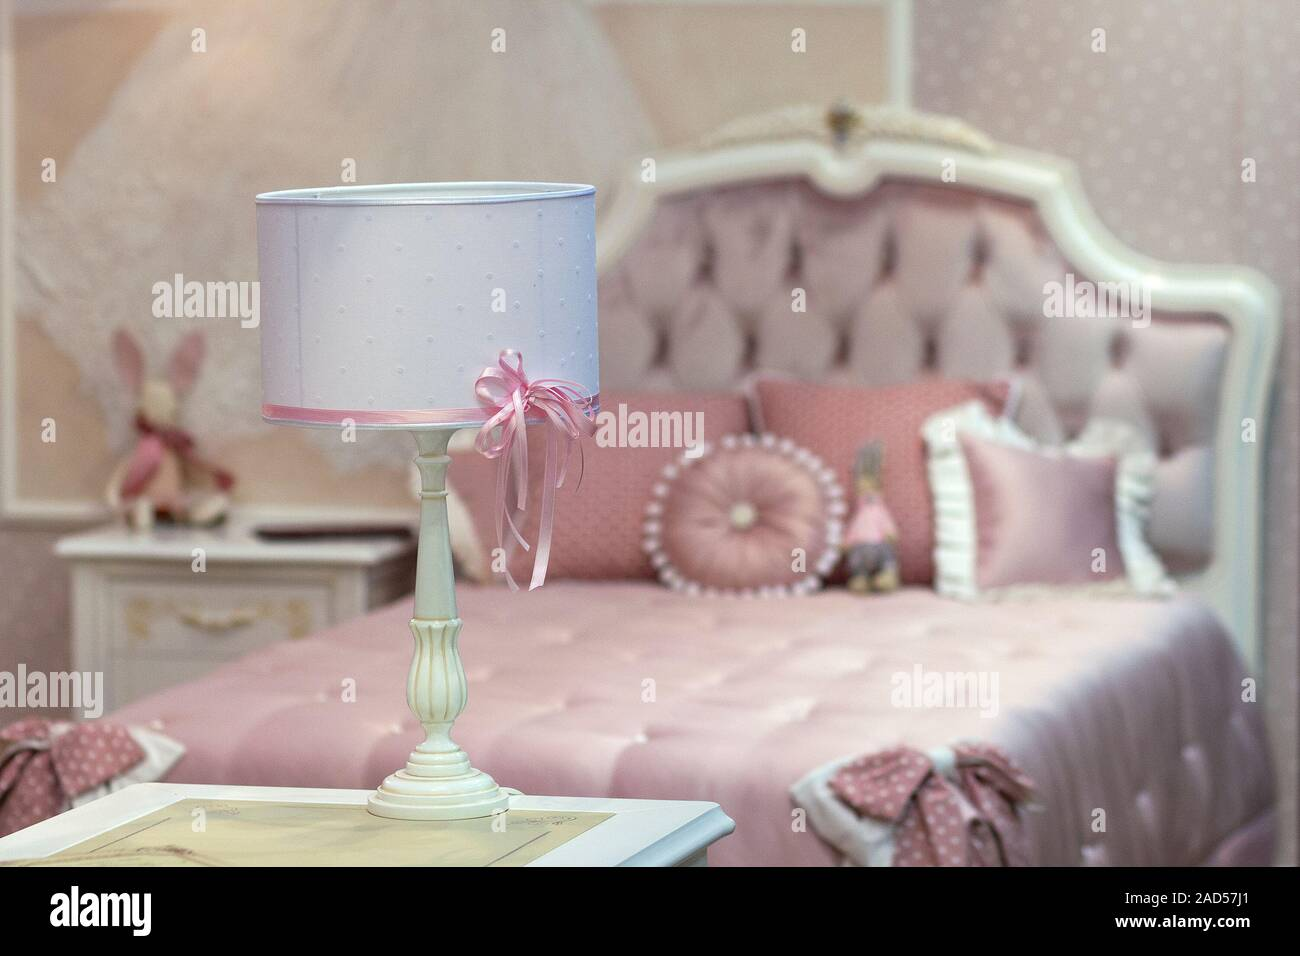 Table Lamp And A Bed In The Children S Bedroom Interior Stock Photo Alamy